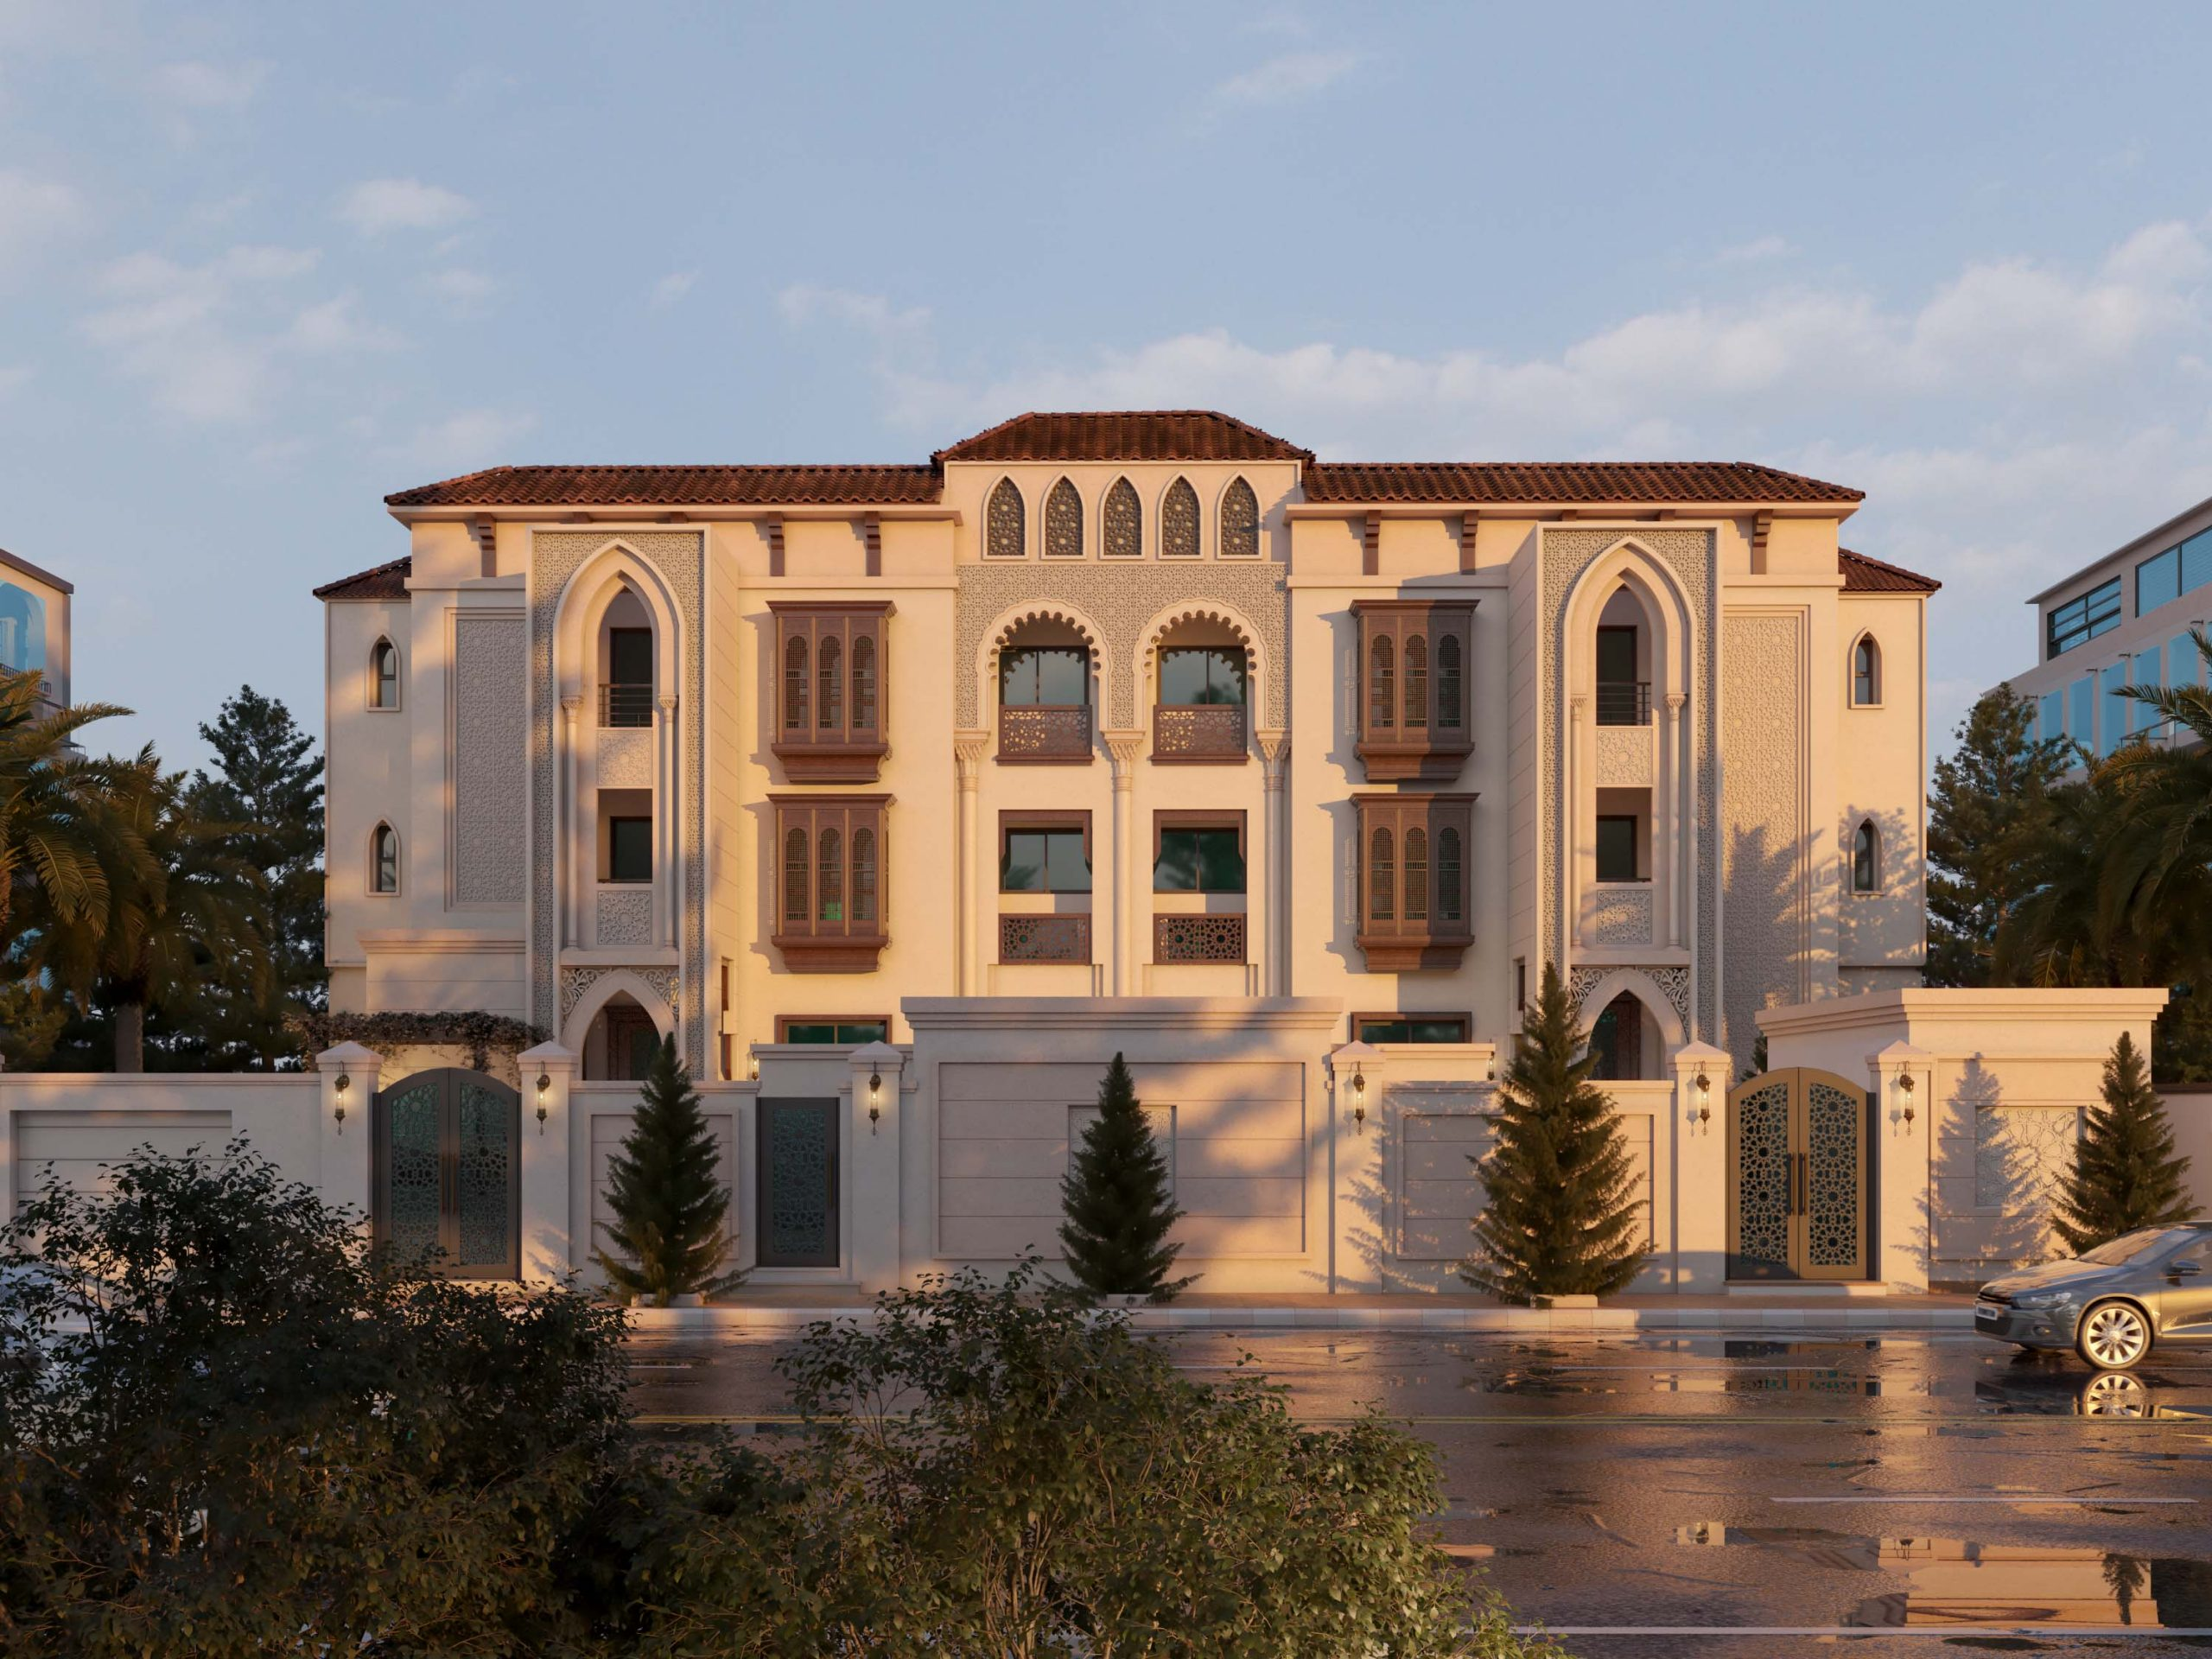 ANDALUSIAN EXTERIOR DESIGN - LUXURY - ROOFING TILES - SUN LIGHT - VRAY SUN